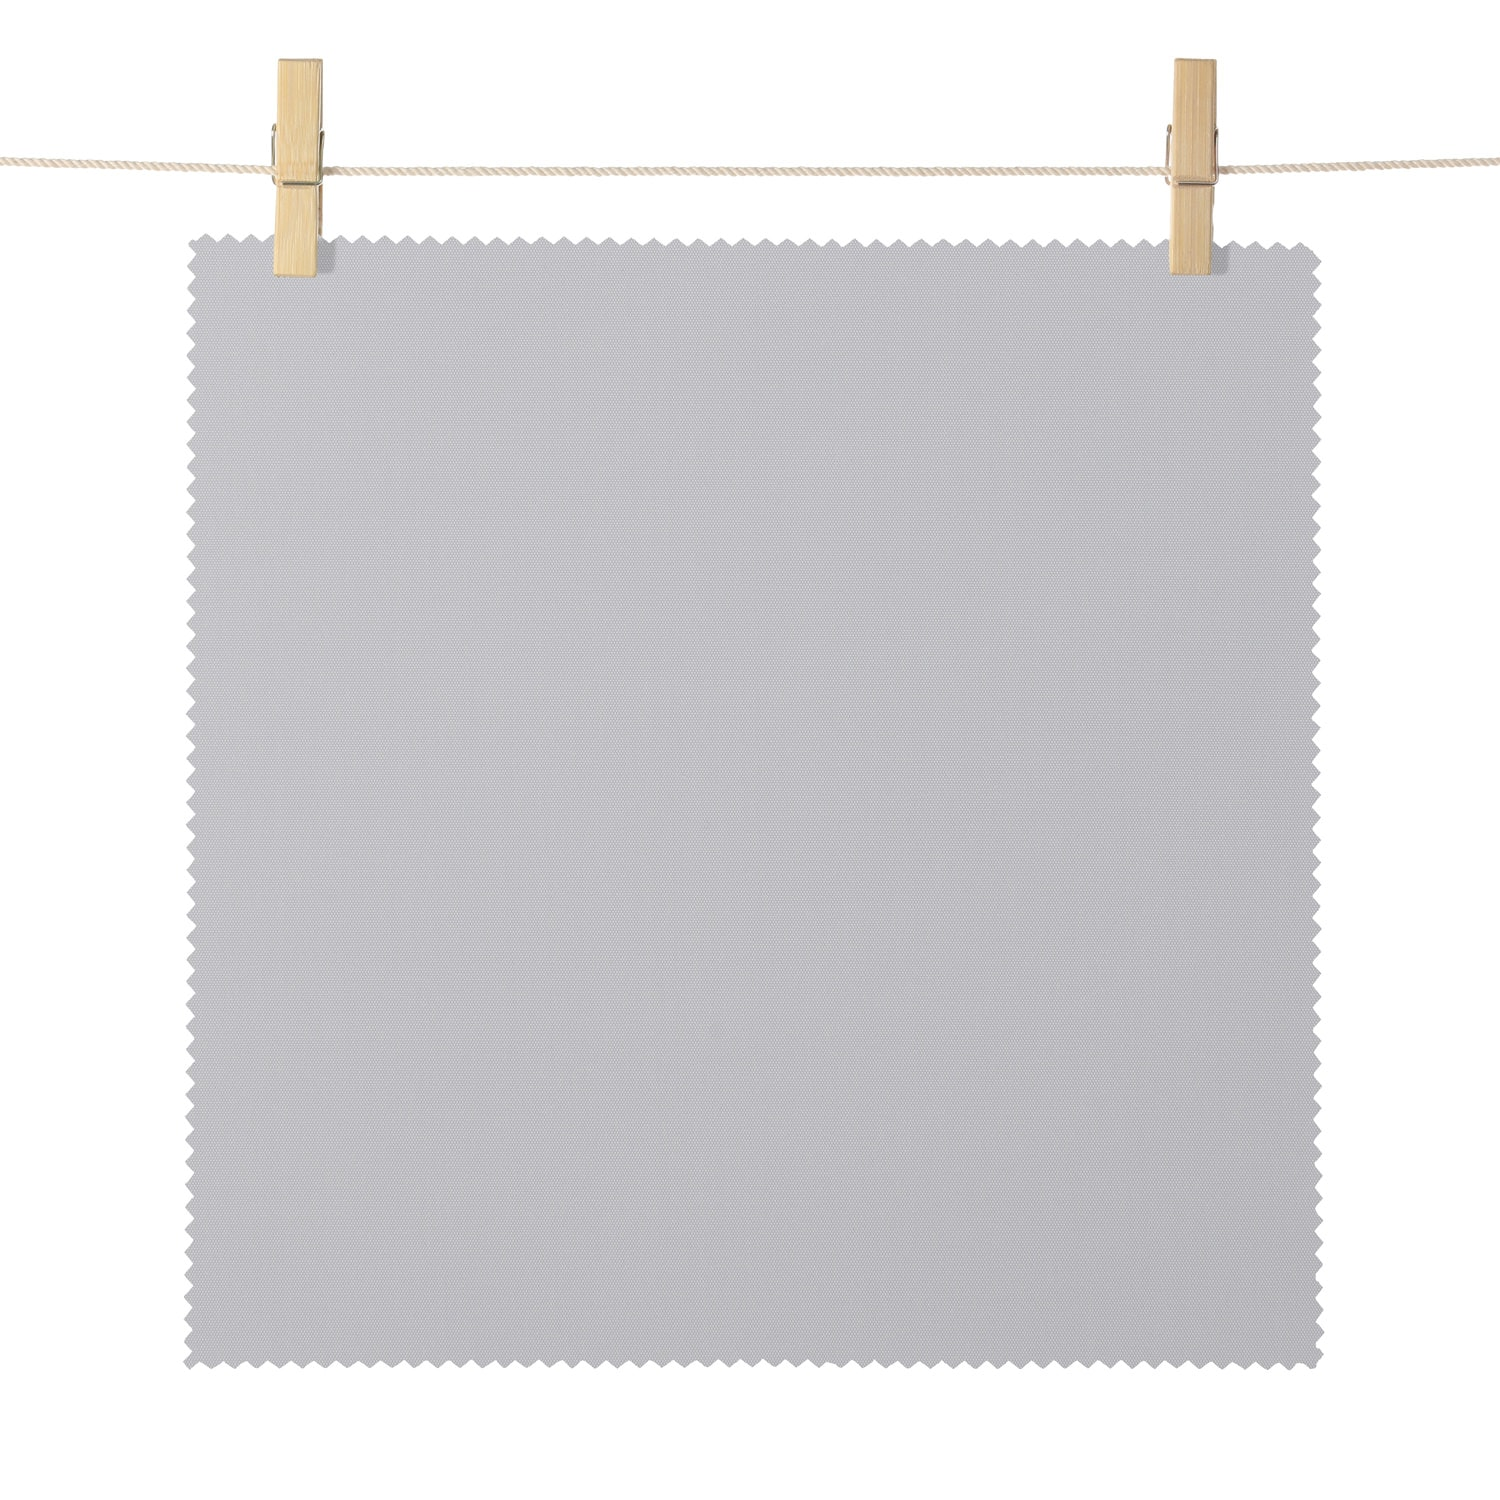 Mendocino Silver Broadcloth Textured Blackout Roller Shade Swatch